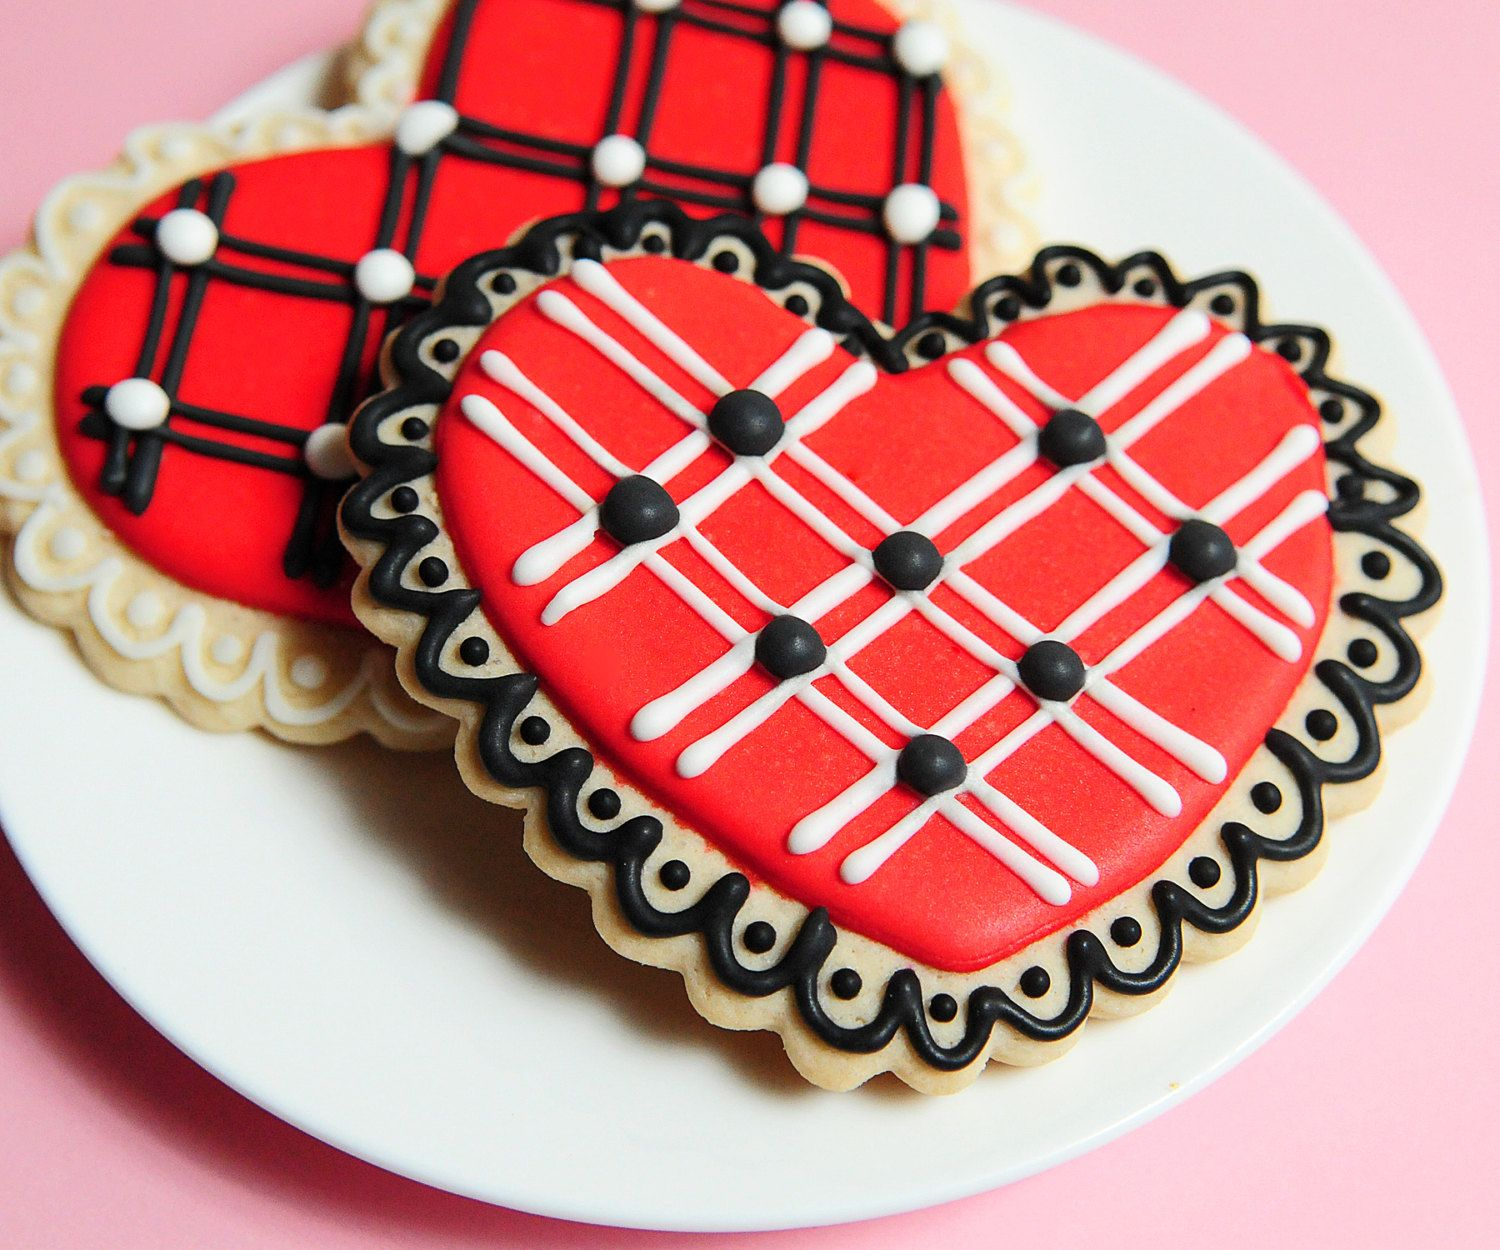 Giant+Valentine's+Day+Sugar+Cookies+by+guiltyconfections+on+Etsy,+$18.00